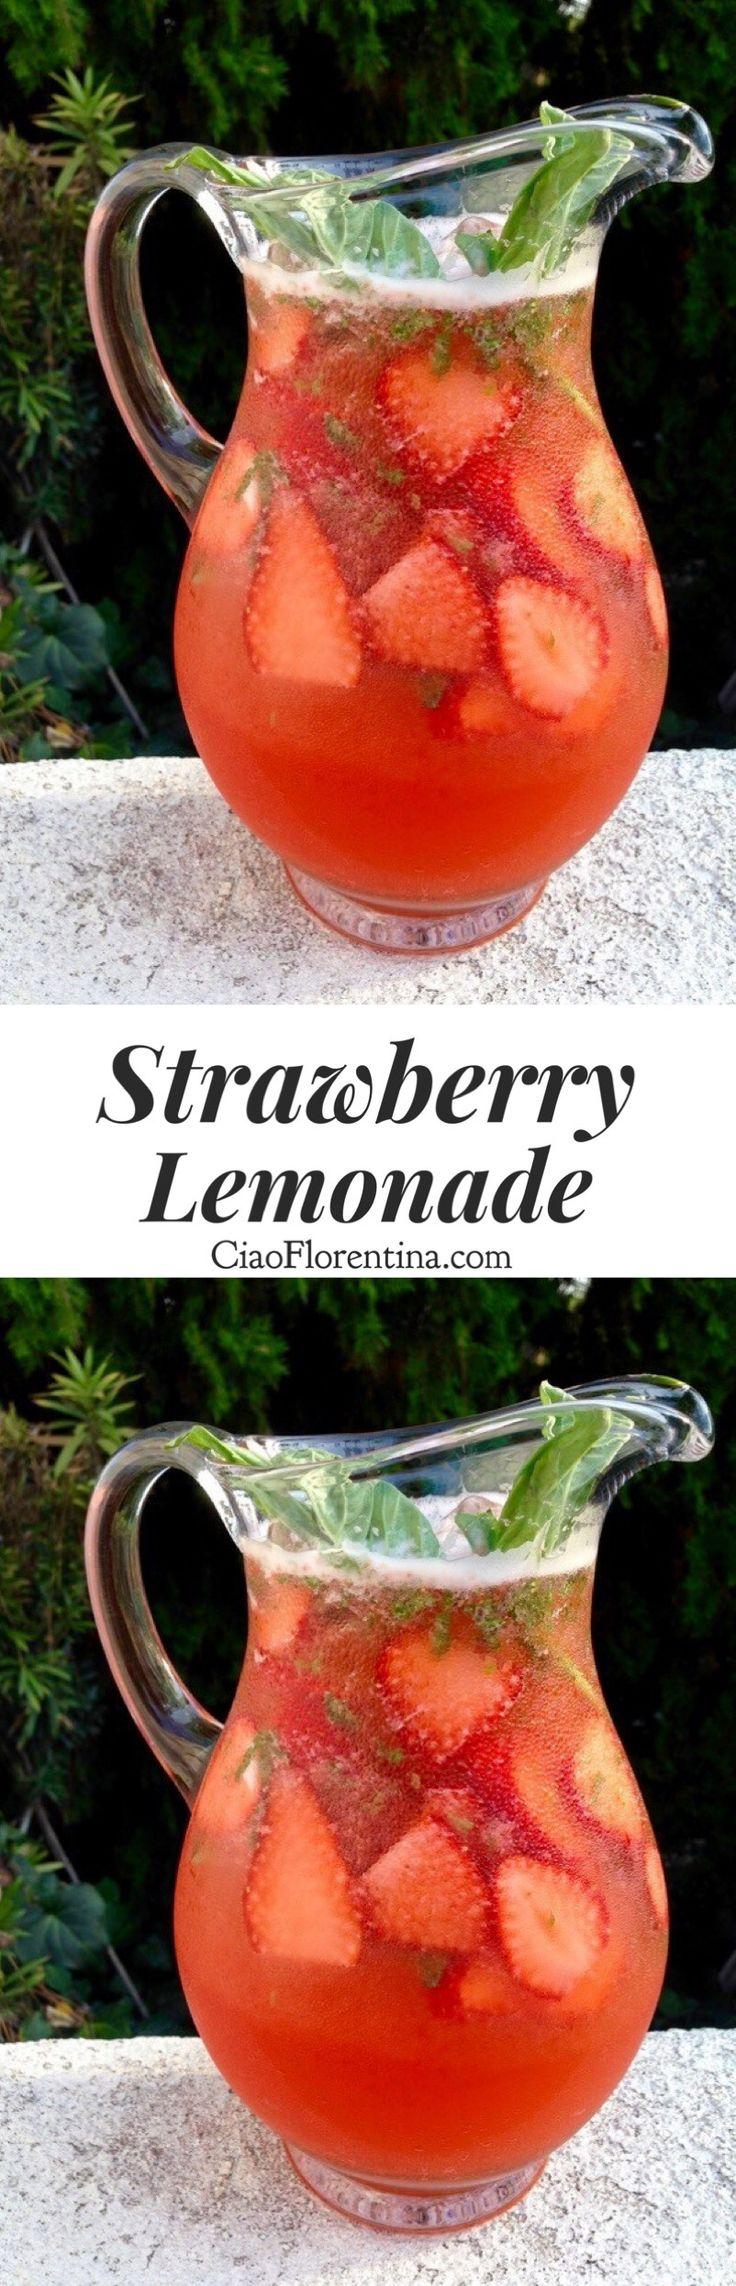 Strawberry Lemonade Recipe with Basil and Honey |CiaoFlorentina.com @CiaoFlorentina